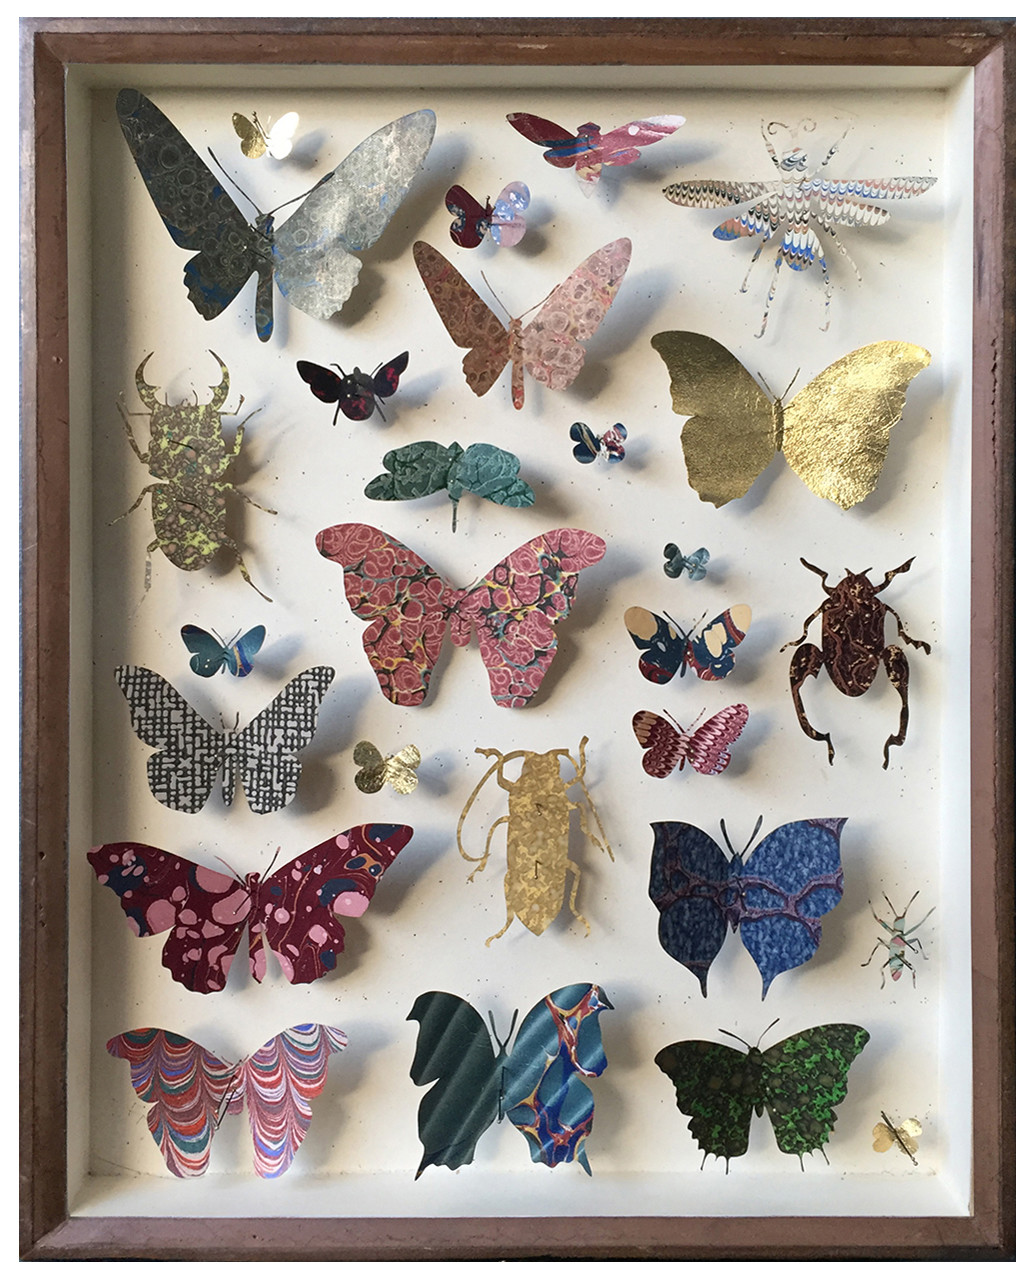 <span class=&#34;link fancybox-details-link&#34;><a href=&#34;/artists/142-helen-ward/works/6233-helen-ward-entomology-case-7-2019/&#34;>View Detail Page</a></span><div class=&#34;artist&#34;><strong>Helen Ward</strong></div> <div class=&#34;title&#34;><em>Entomology Case 7</em>, 2019</div> <div class=&#34;medium&#34;>Victorian entomology drawer, hand-marbled papers, gold leaf, enamel pins</div> <div class=&#34;dimensions&#34;>39 x 29 cm</div><div class=&#34;price&#34;>£595.00</div><div class=&#34;copyright_line&#34;>Own Art: £ 59.50 x 10 Monthly 0% APR Representative Payments</div>